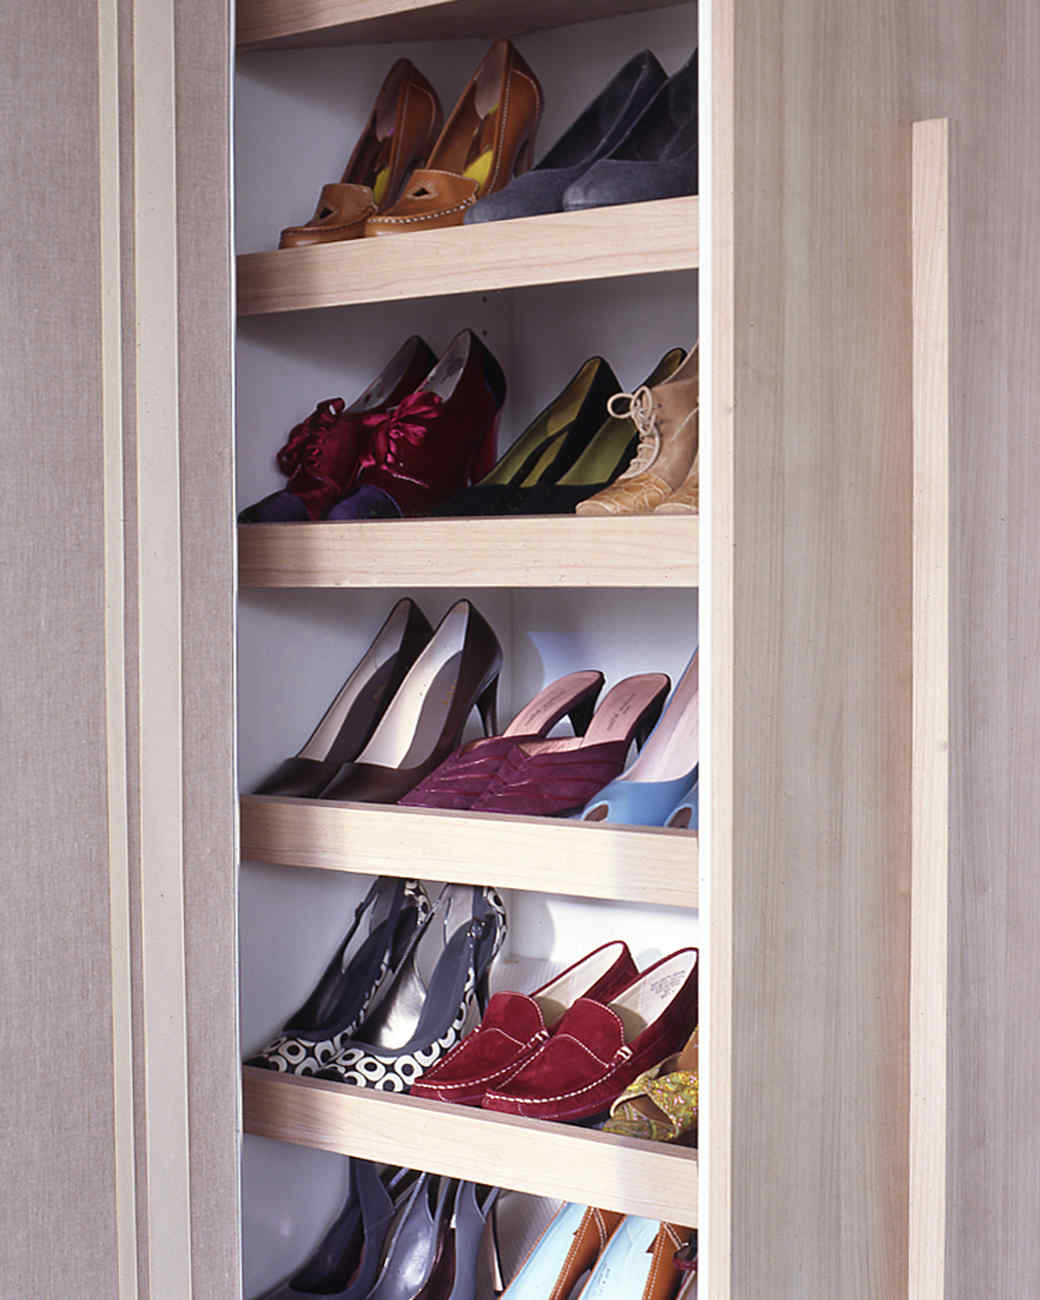 mla_104332_0109_shoepantry.jpg